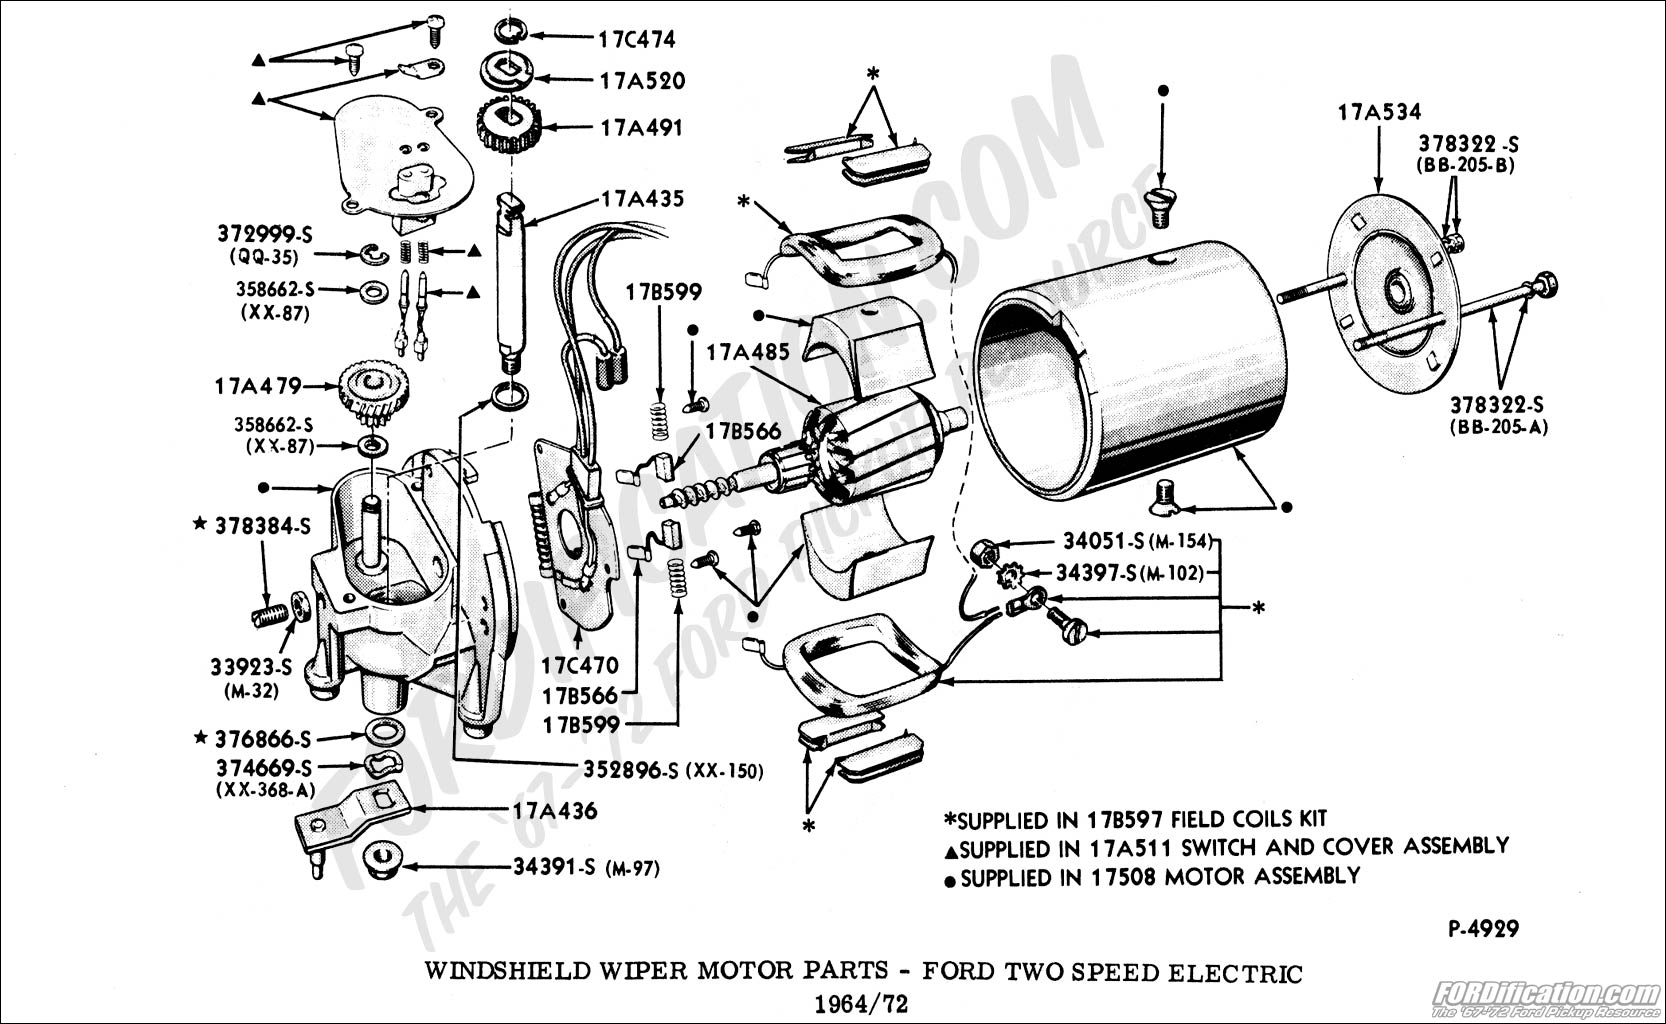 Ford Truck Technical Drawings And Schematics Section I 1996 Jeep Cherokee Windshield Wipers Wiring Wiper Motor Parts